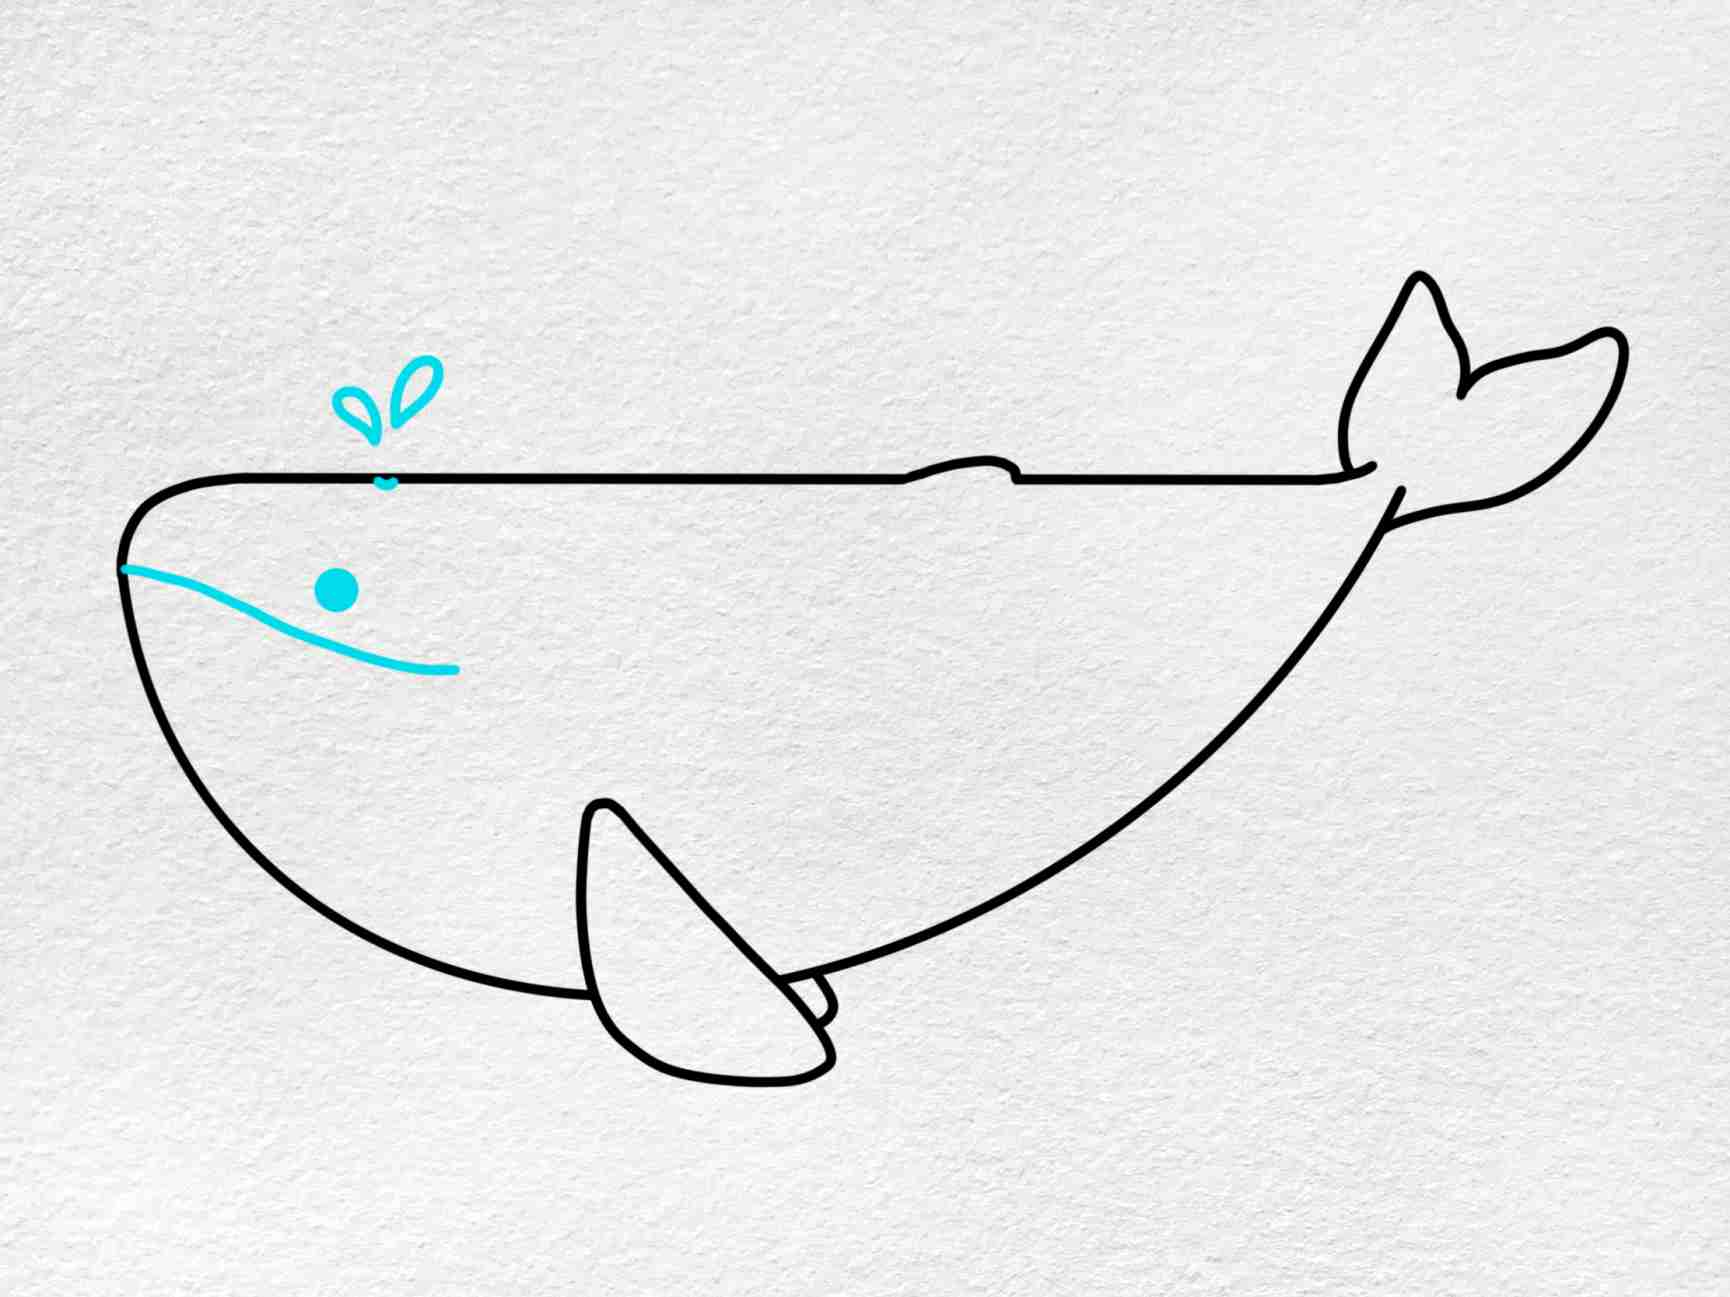 Cute Whale Drawing: Step 5